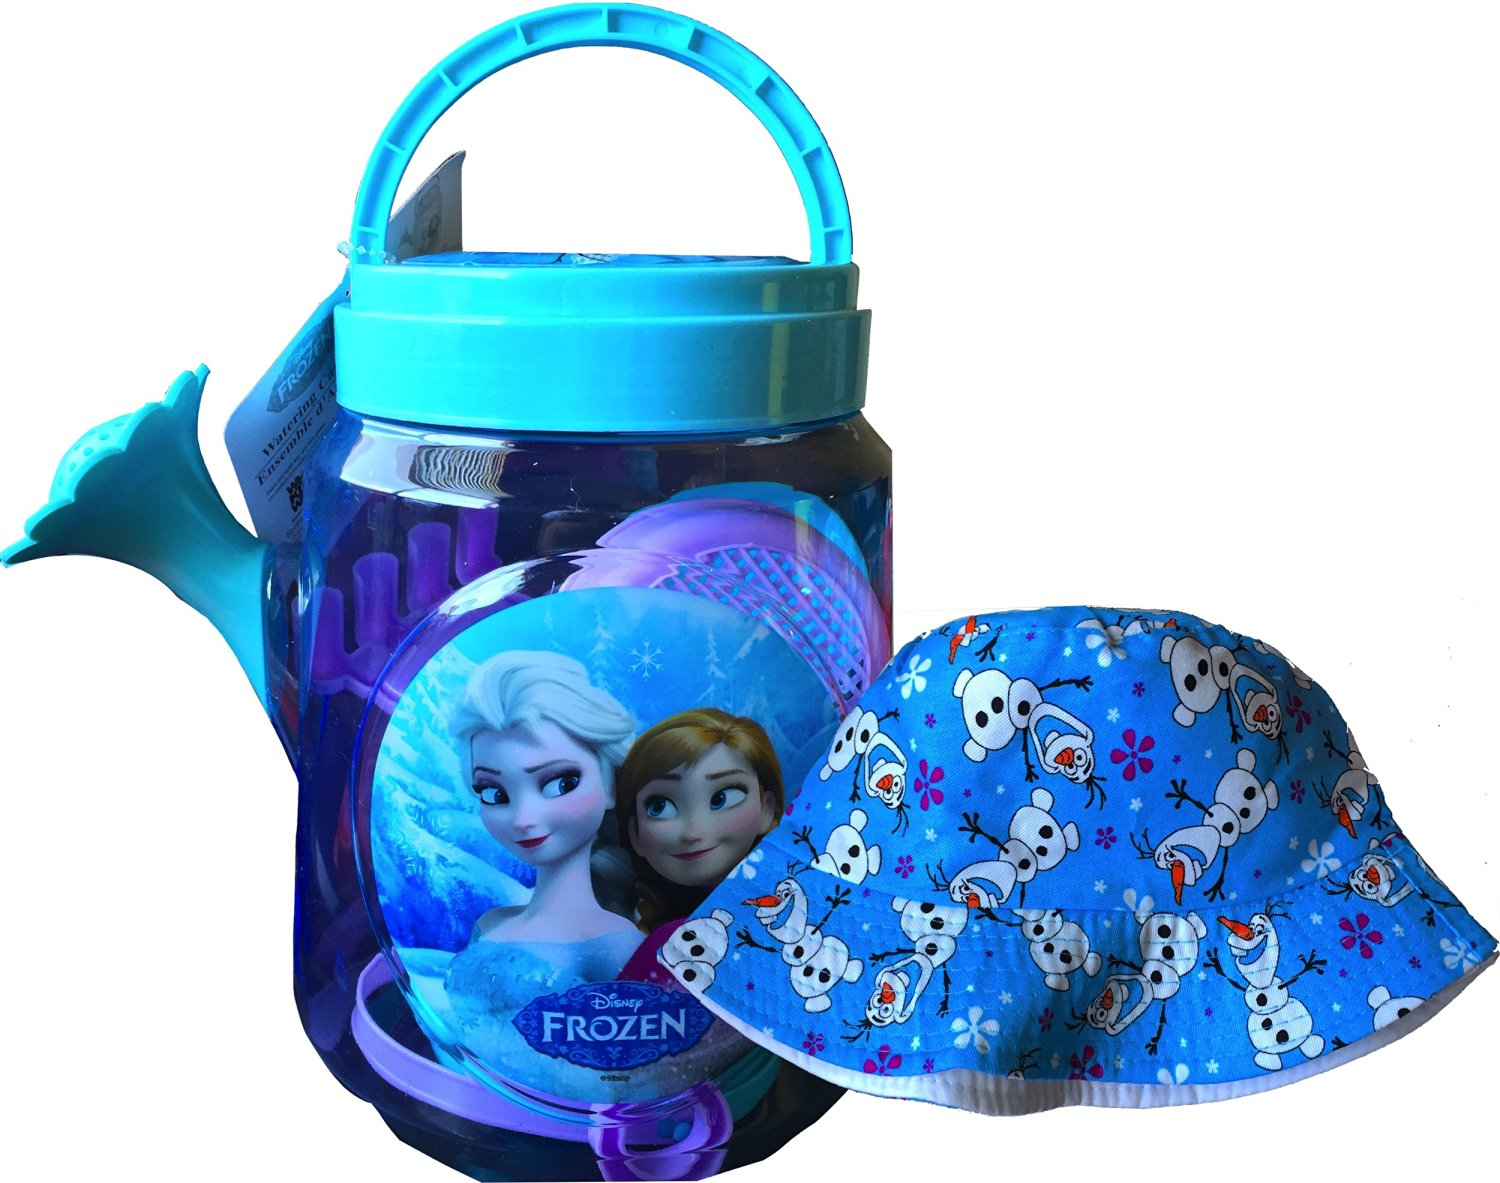 Disney Frozen Outdoor Play Watering Can Set Children's Nature Exploration Toys Includes Shovel, Rake, 2 Sand Molds, Sifter, Pail, Watering Can with Disney Frozen Olaf Hat